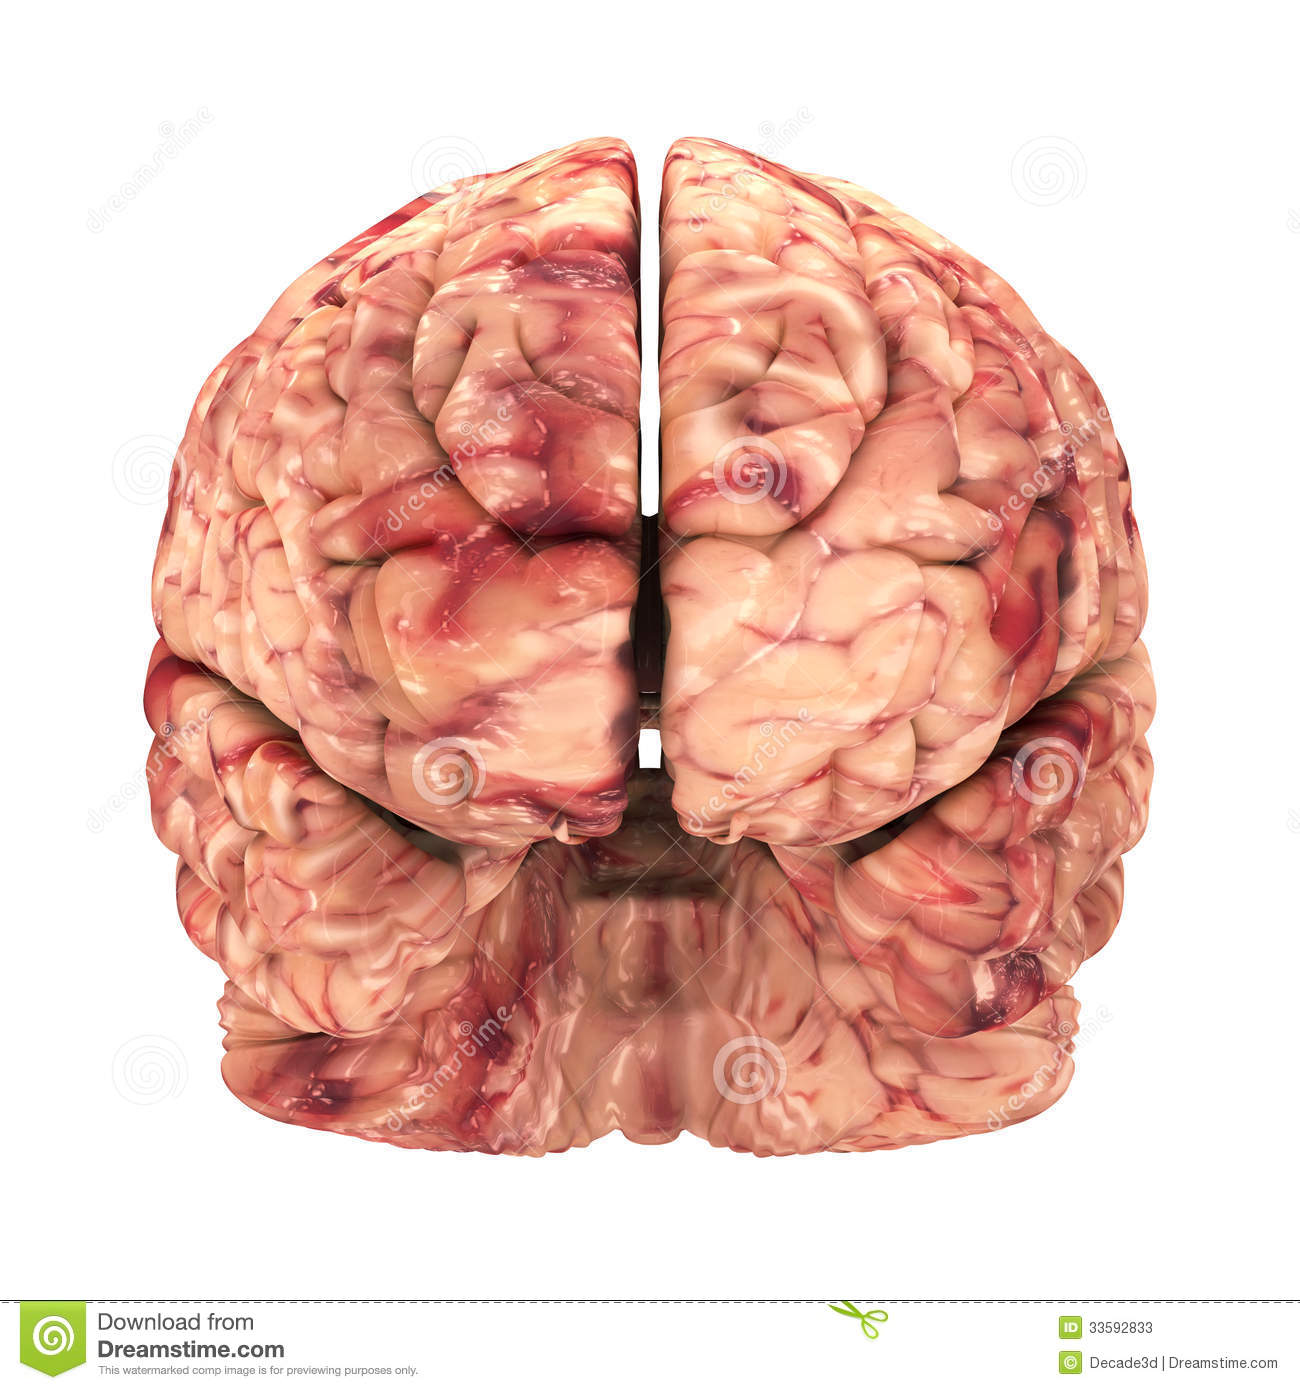 Rose Anatomy Diagram Related Keywords Suggestions Brain Front View Isolated Illustration 33592833 Megapixl